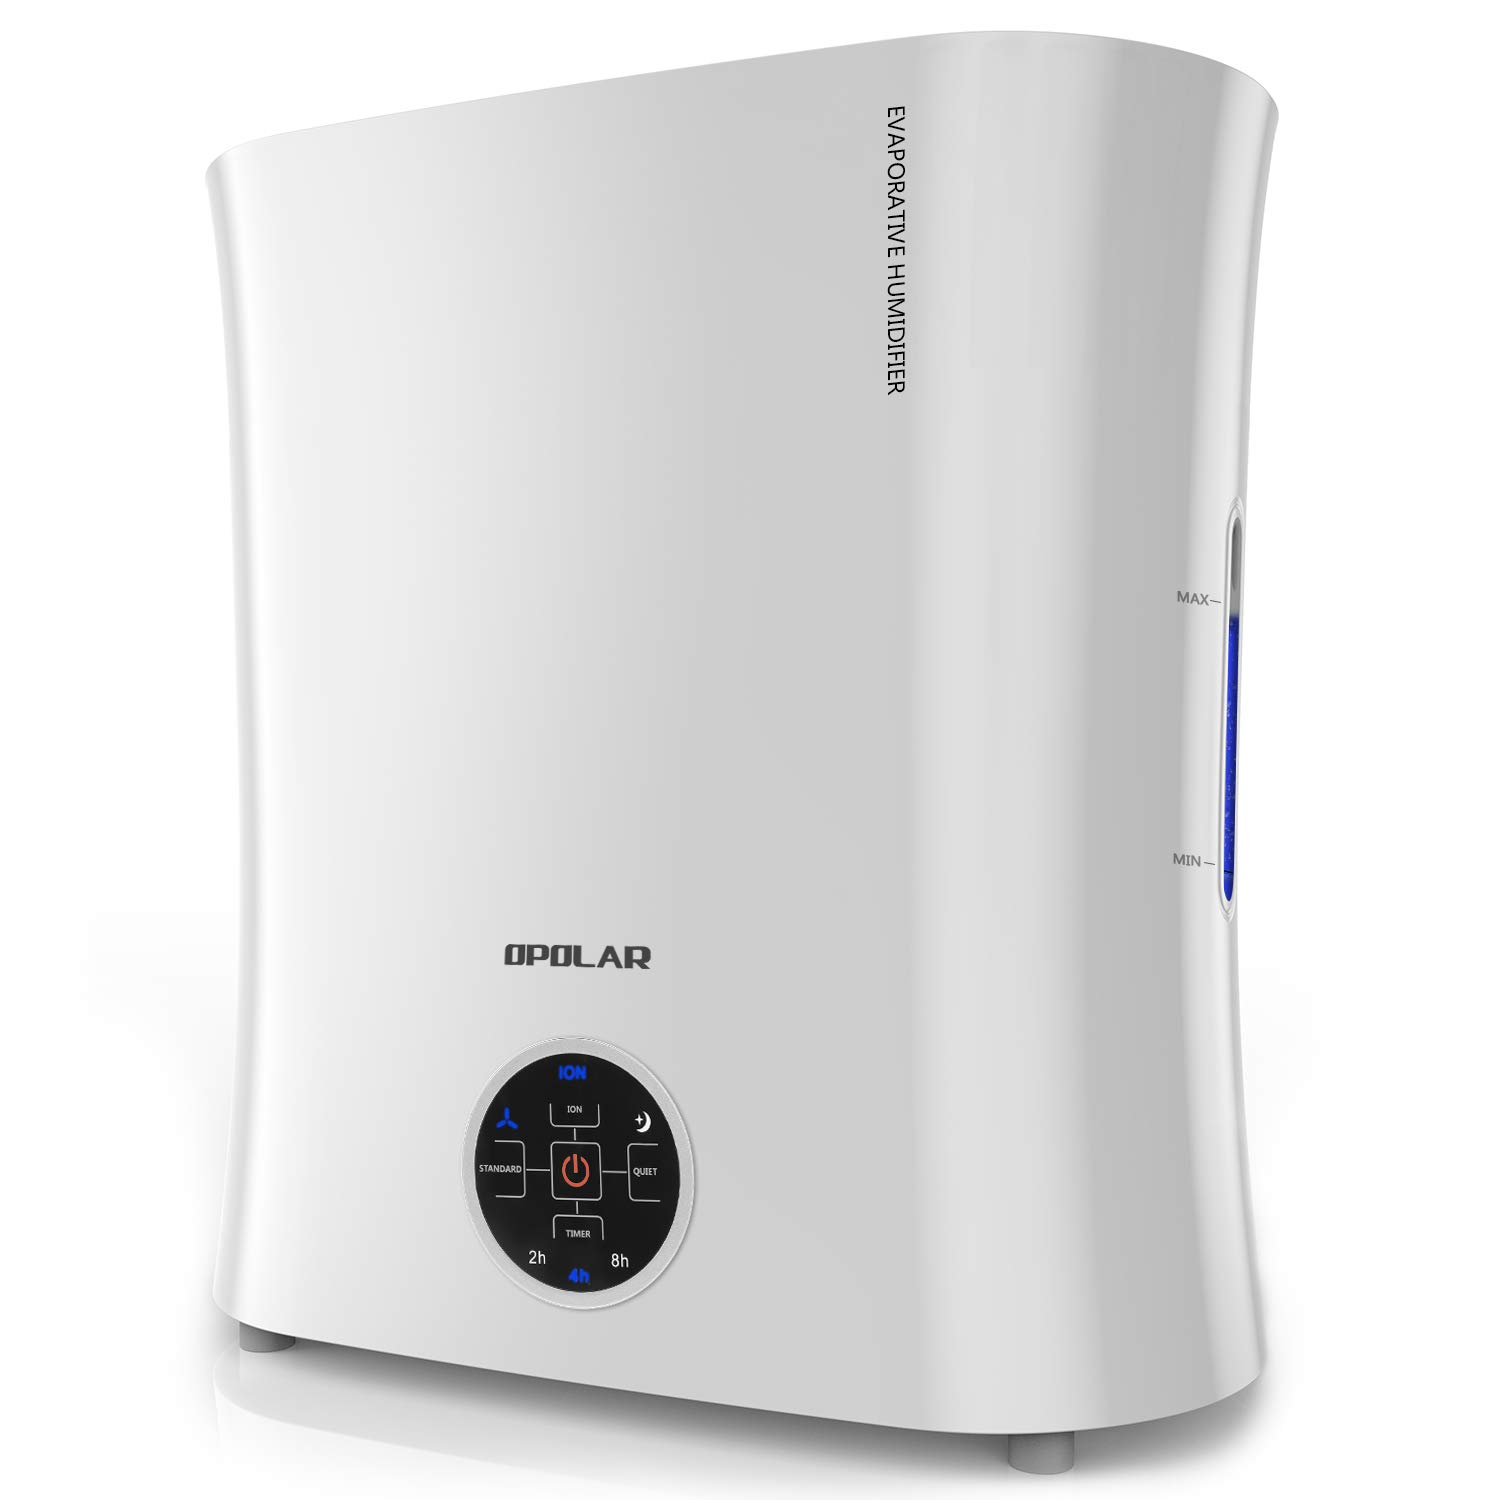 OPOLAR Digital Evaporative Best Humidifier Review by www.snoremagazine.com